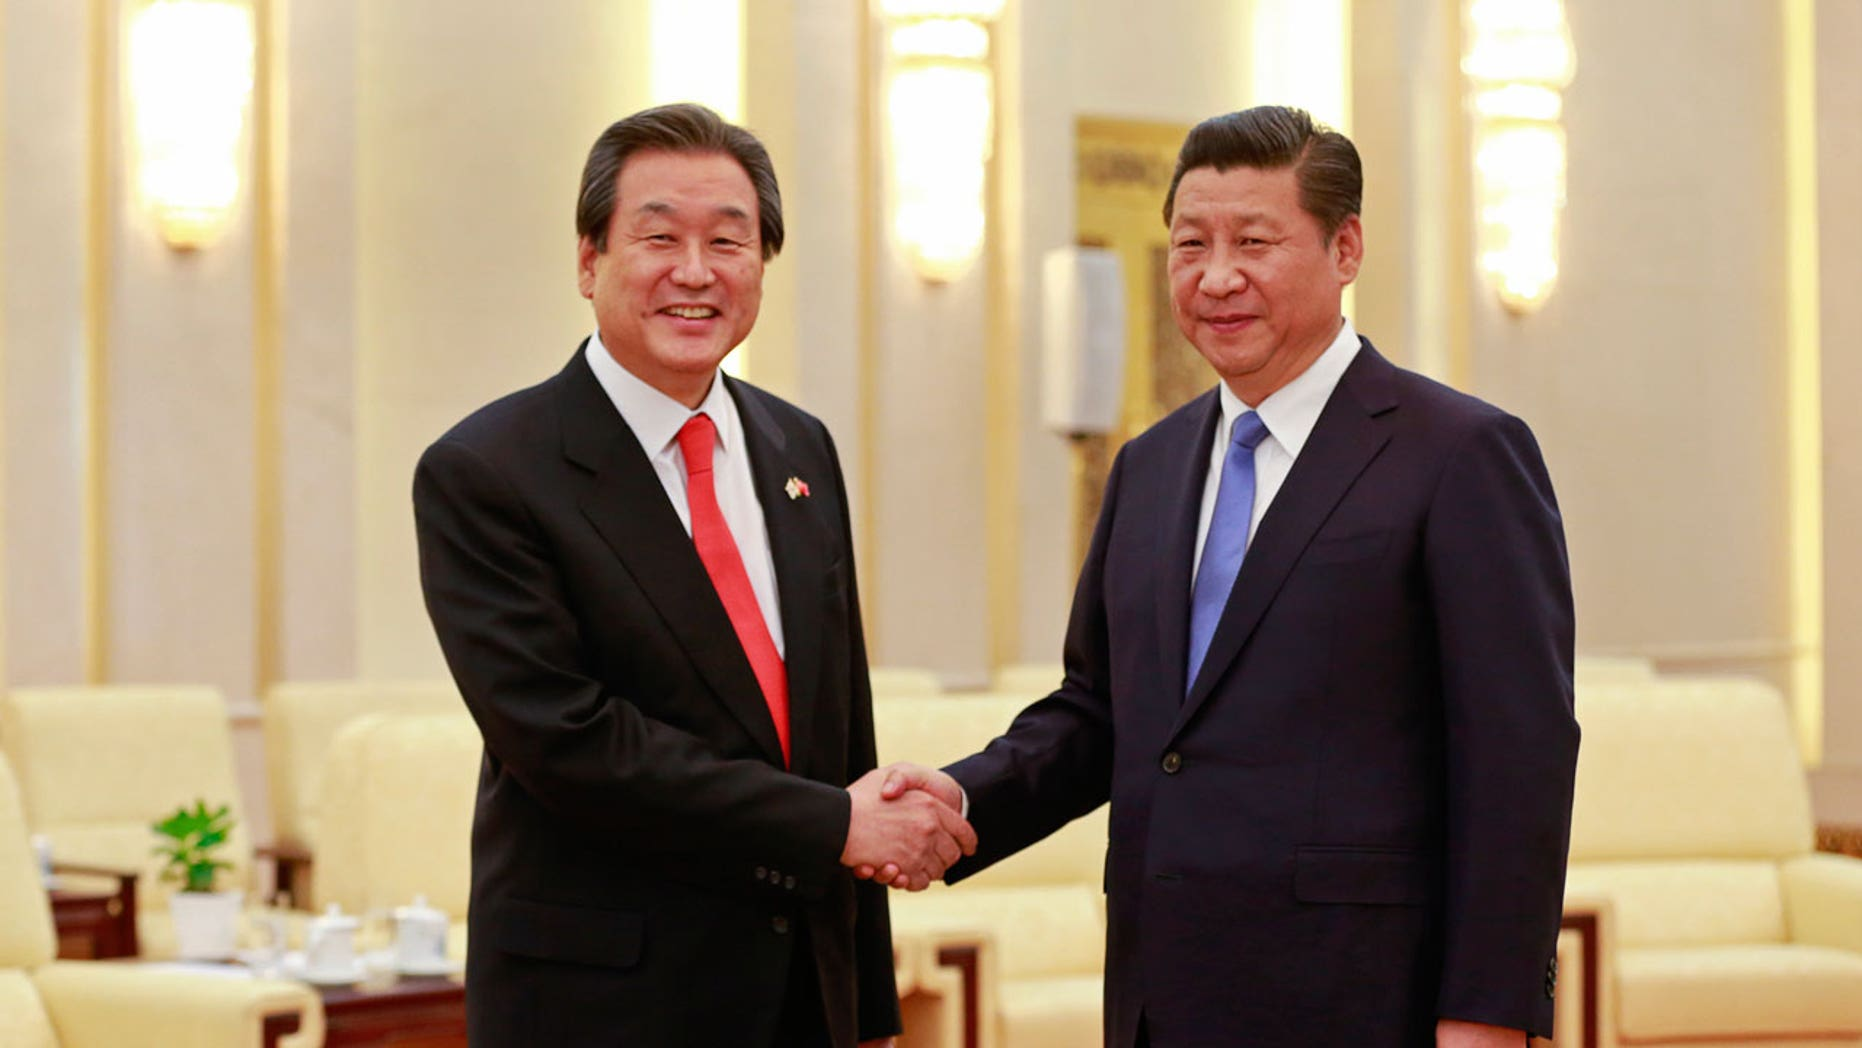 South Korean politician Kim Moo-sung (L) is seen greeting Chinese President Xi Jinging in 2014.